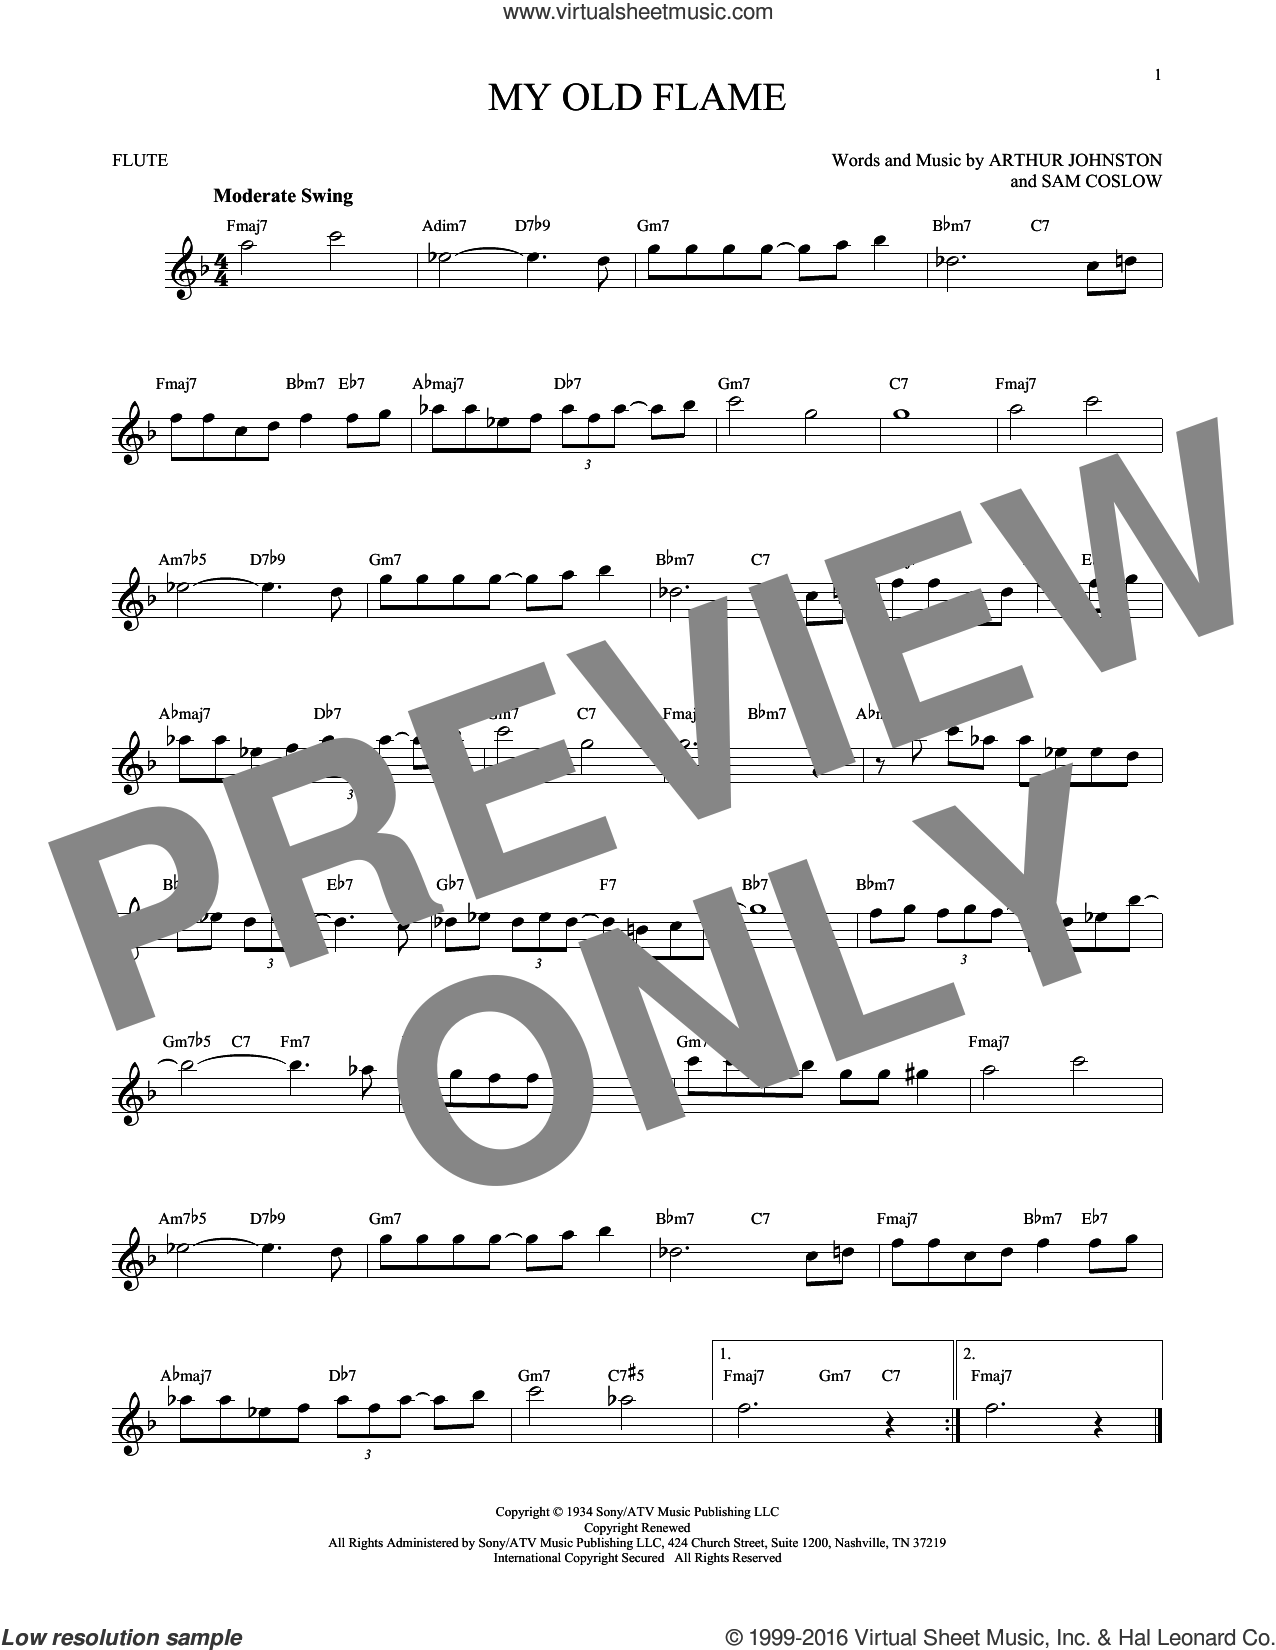 My Old Flame sheet music for flute solo by Arthur Johnston, Peggy Lee and Sam Coslow, intermediate